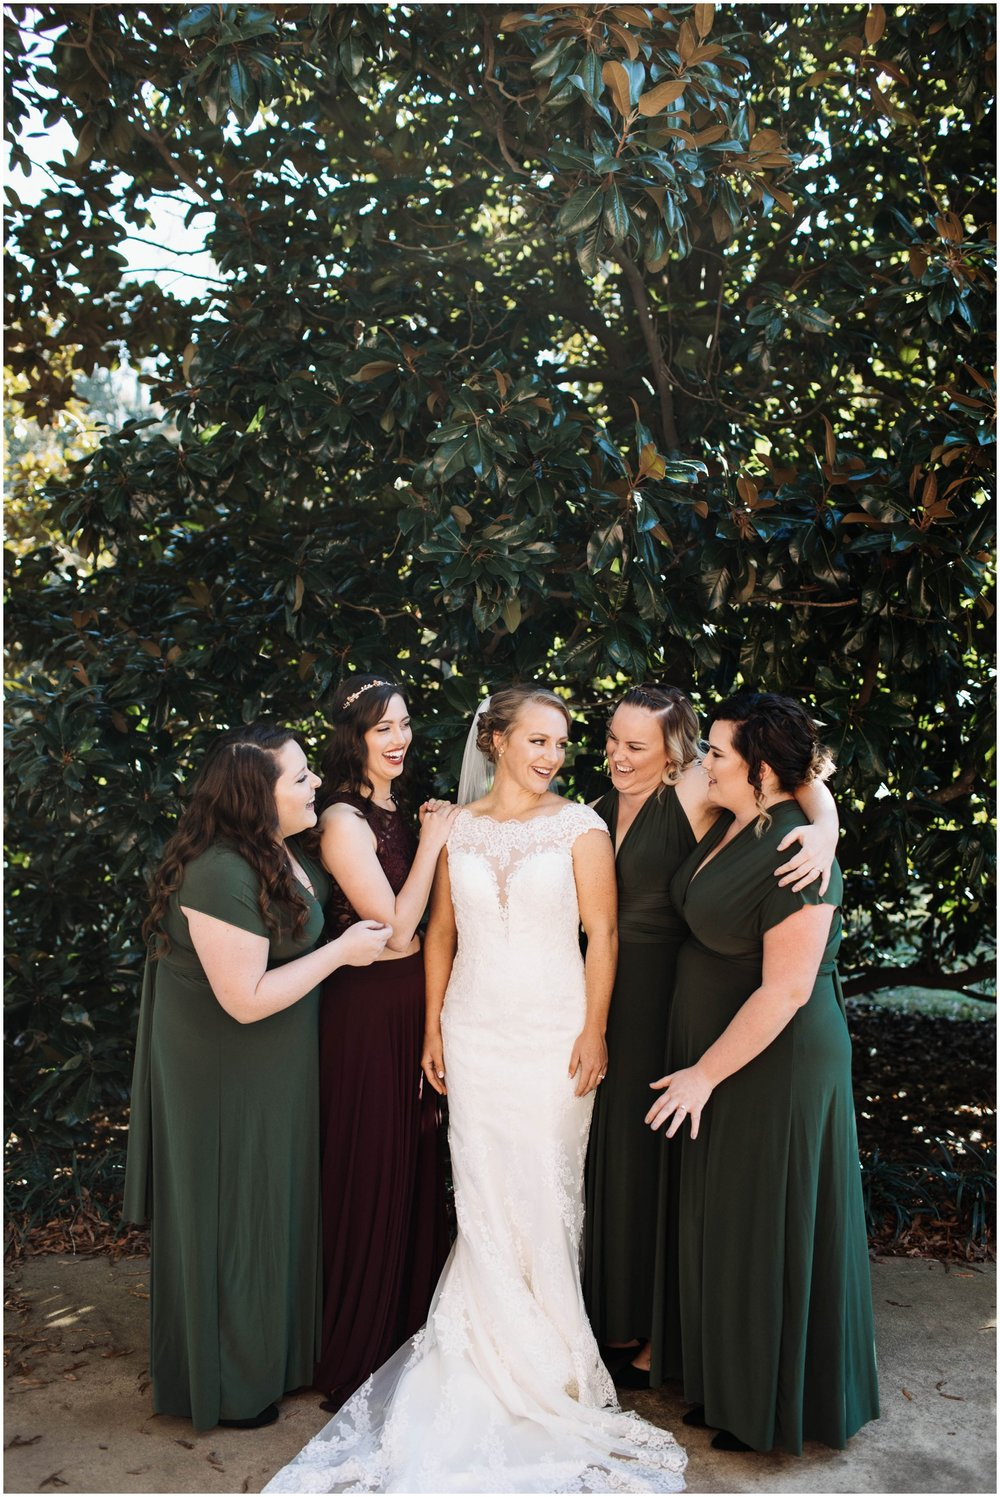 Jess+Dan_rustic_southern_farm_fall_wedding_charlotte_north carolina_taylor powers_0342.jpg